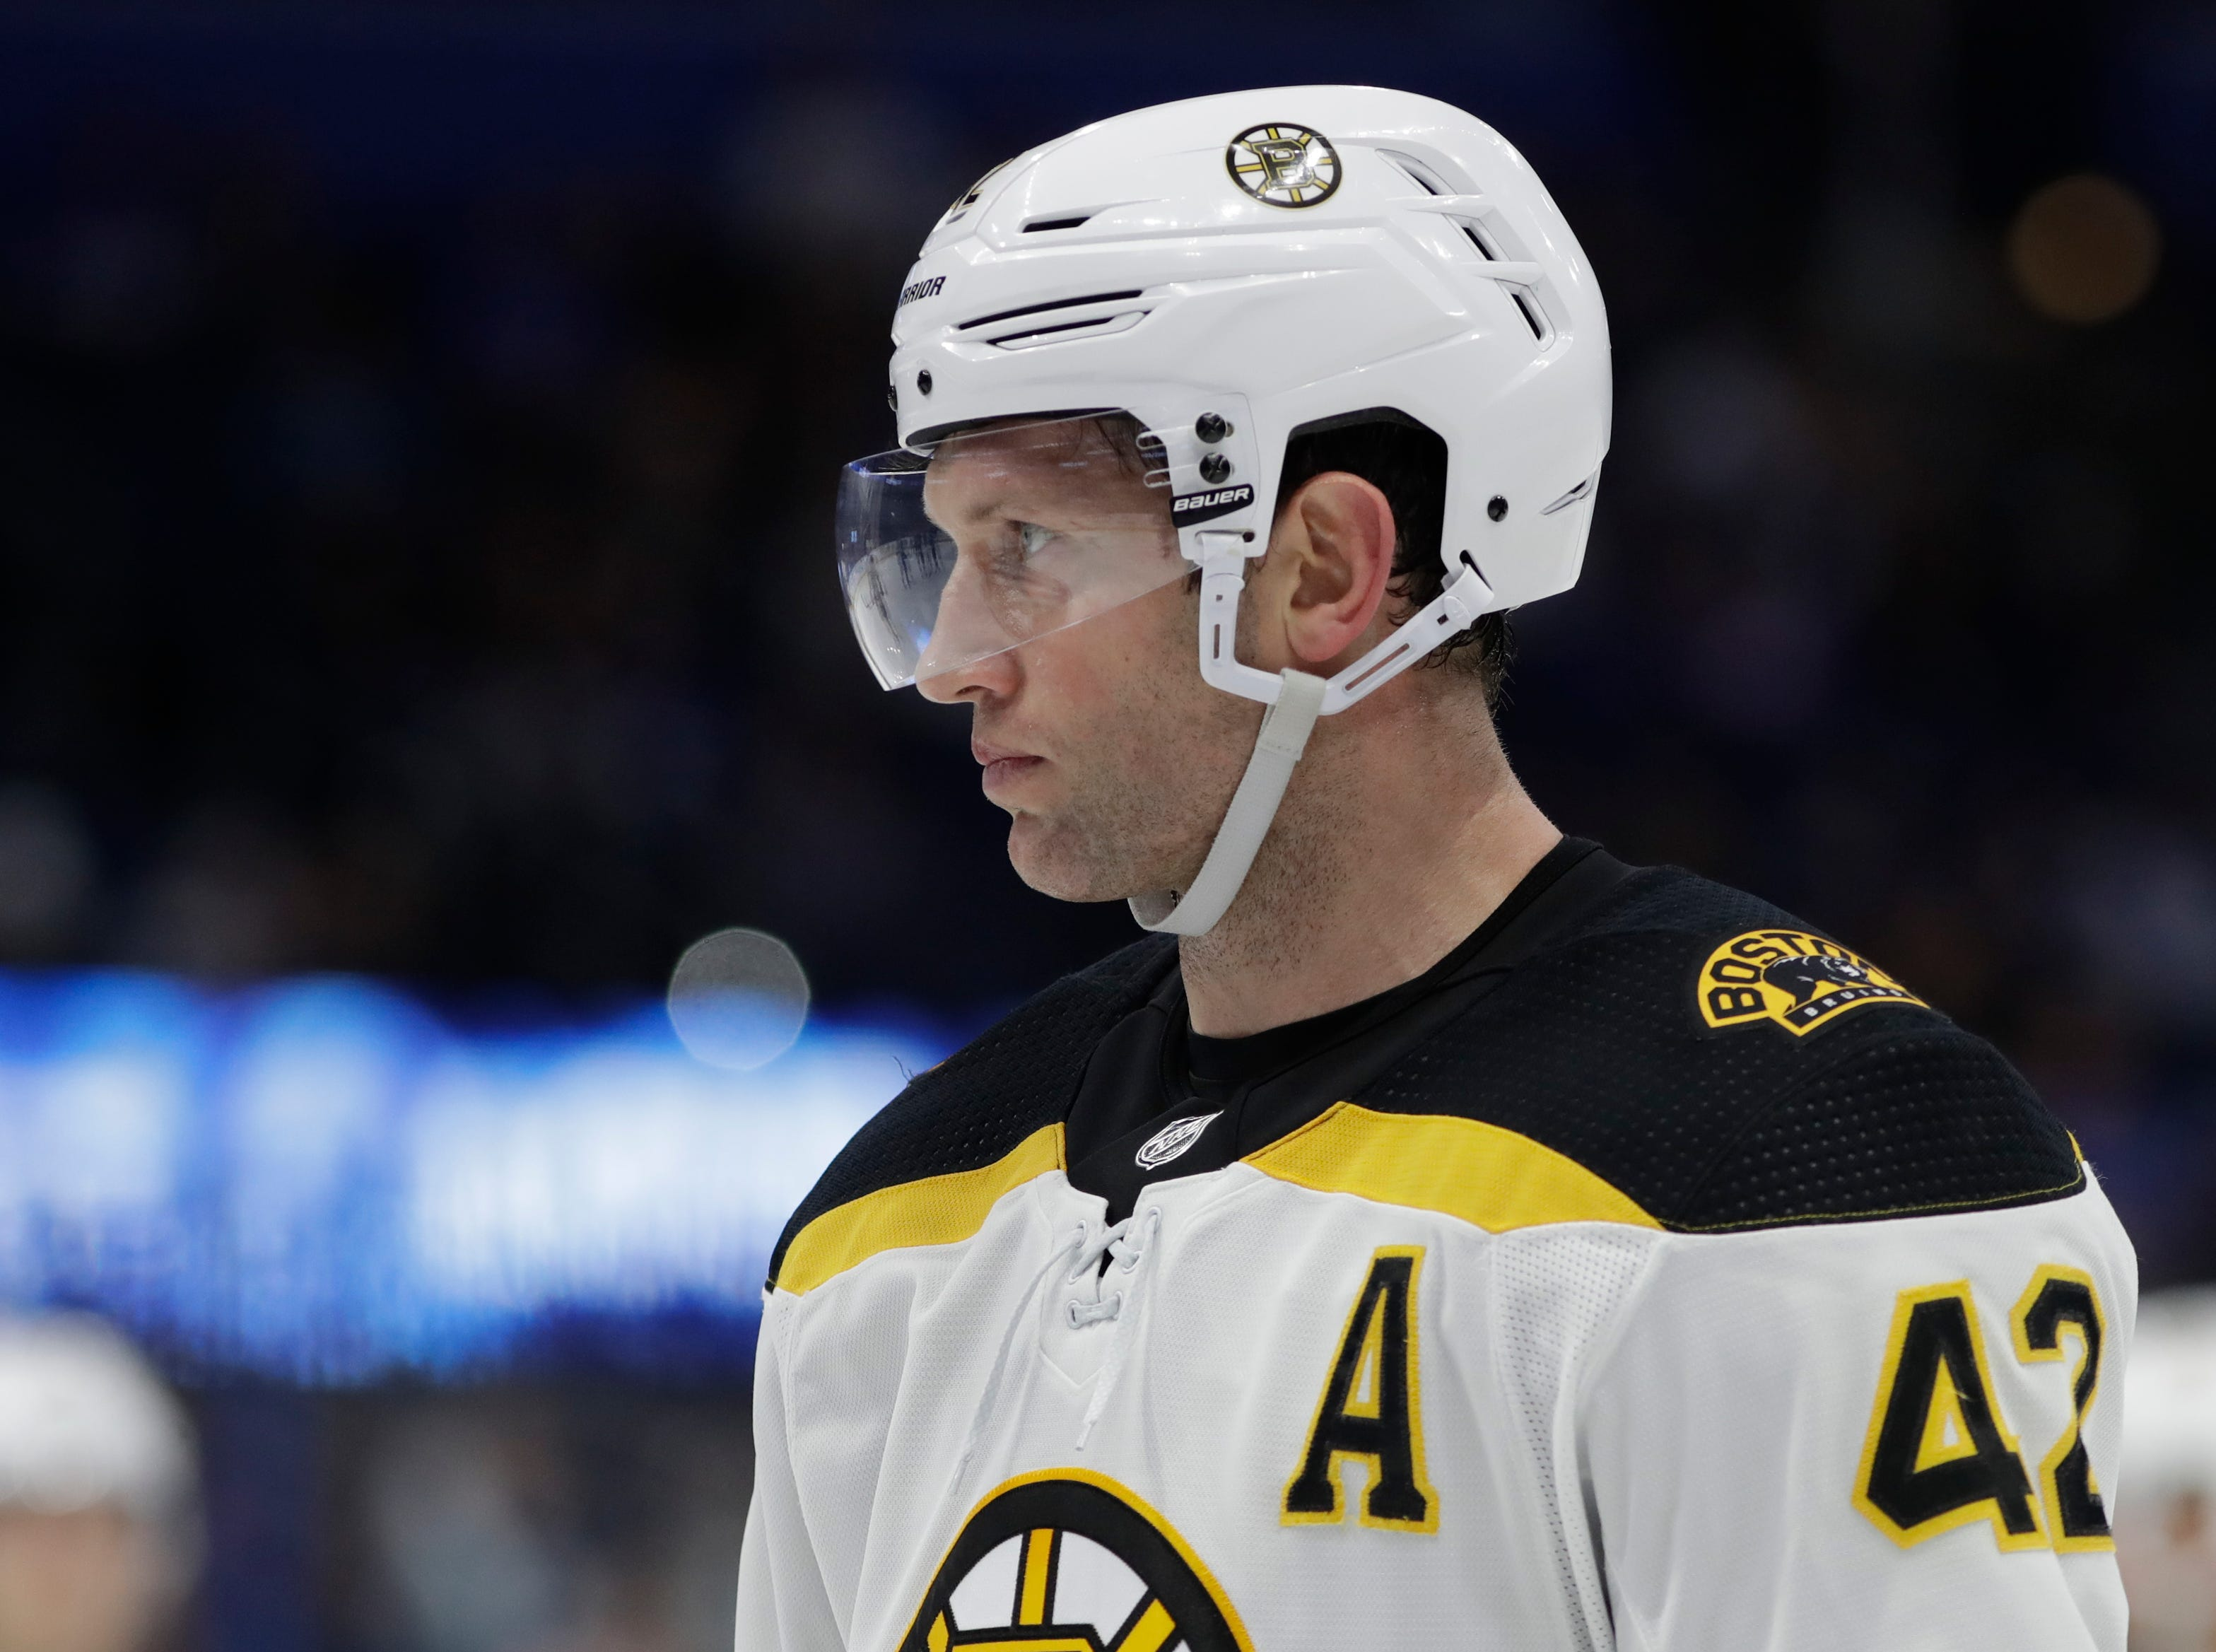 Dec. 28: Boston Bruins right wing David Backes was suspended for three games for an illegal hit to the head of New Jersey Devils forward Blake Coleman. Lost pay: $219,512.19.